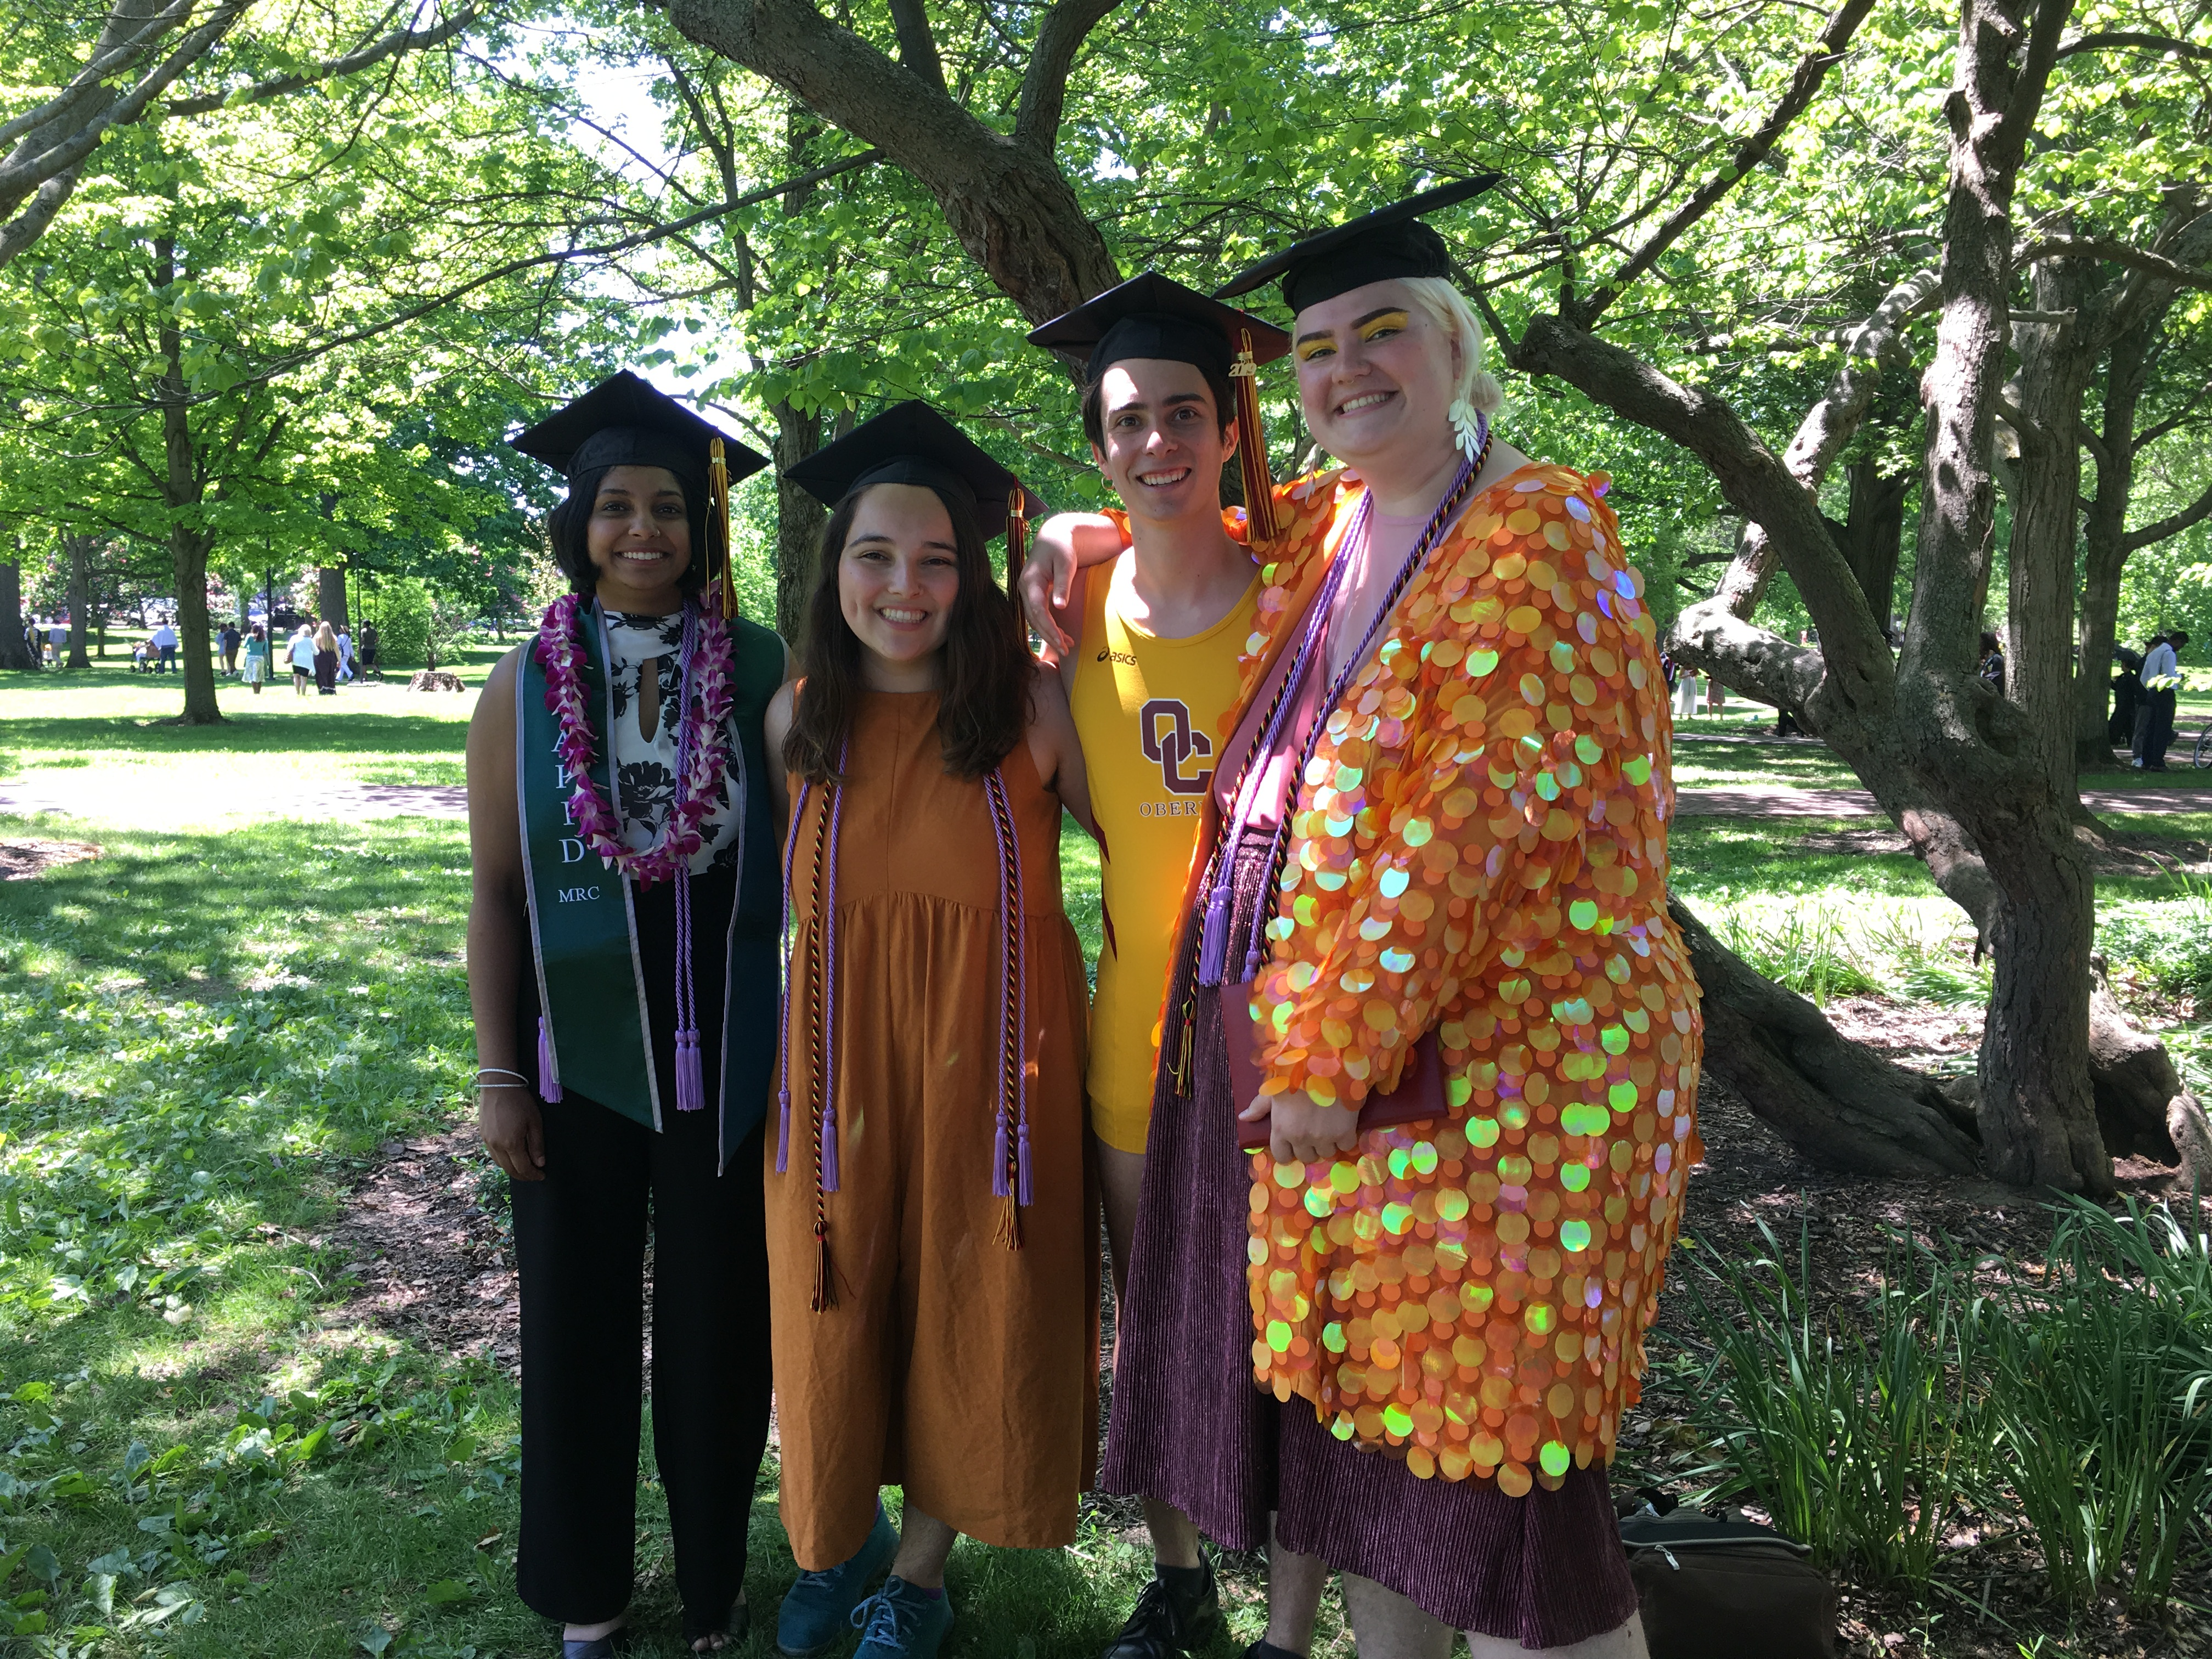 Kira and friends standing in grassy area at graduation. Photo